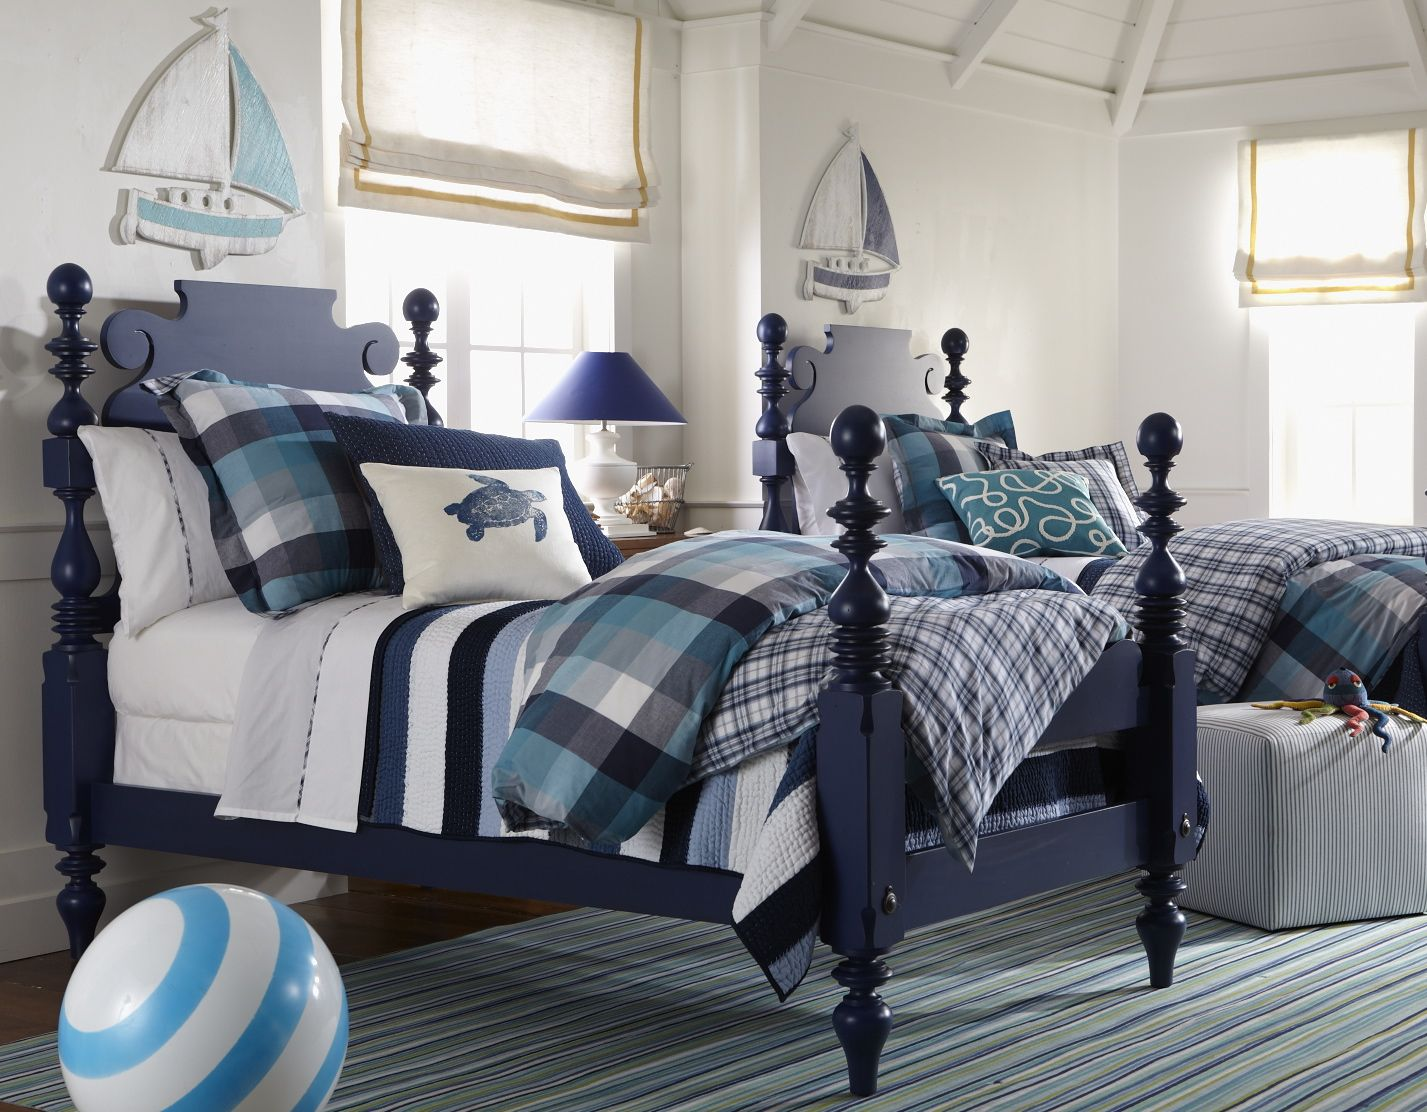 Quincy Bed Now In Twin Size Great For The Guestroom Too